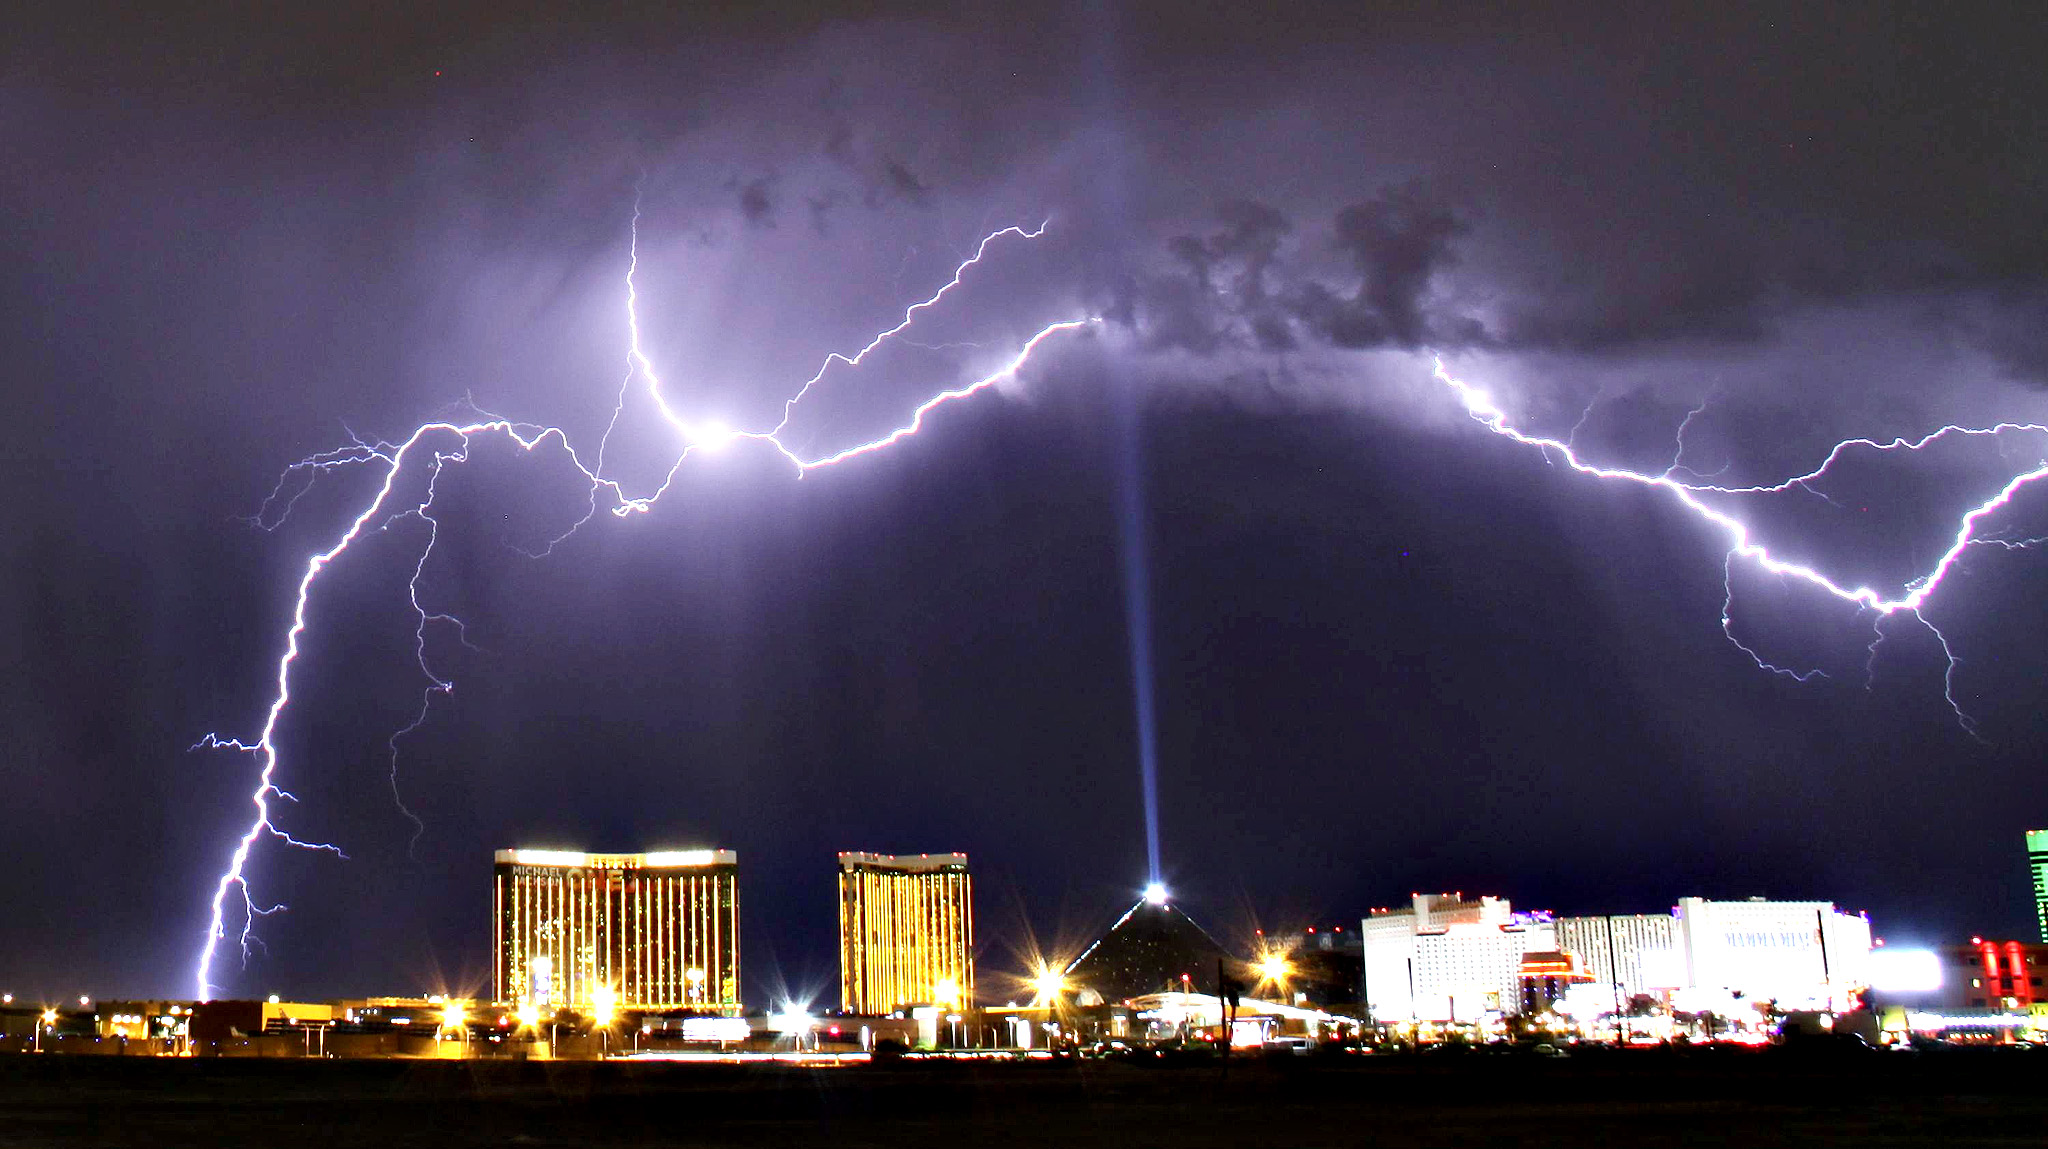 A monsoon lightning storm strikes over the Mandalay Bay Resorts and Casino and Luxor hotels in Las Vegas, Nevada late July 7, 2014. Monsoon storms are forecast for the the rest of the week in the Nevada and Arizona states.  The Luxor Sky Beam can be seen shining into the sky from the top of the hotel's pyramid structure.